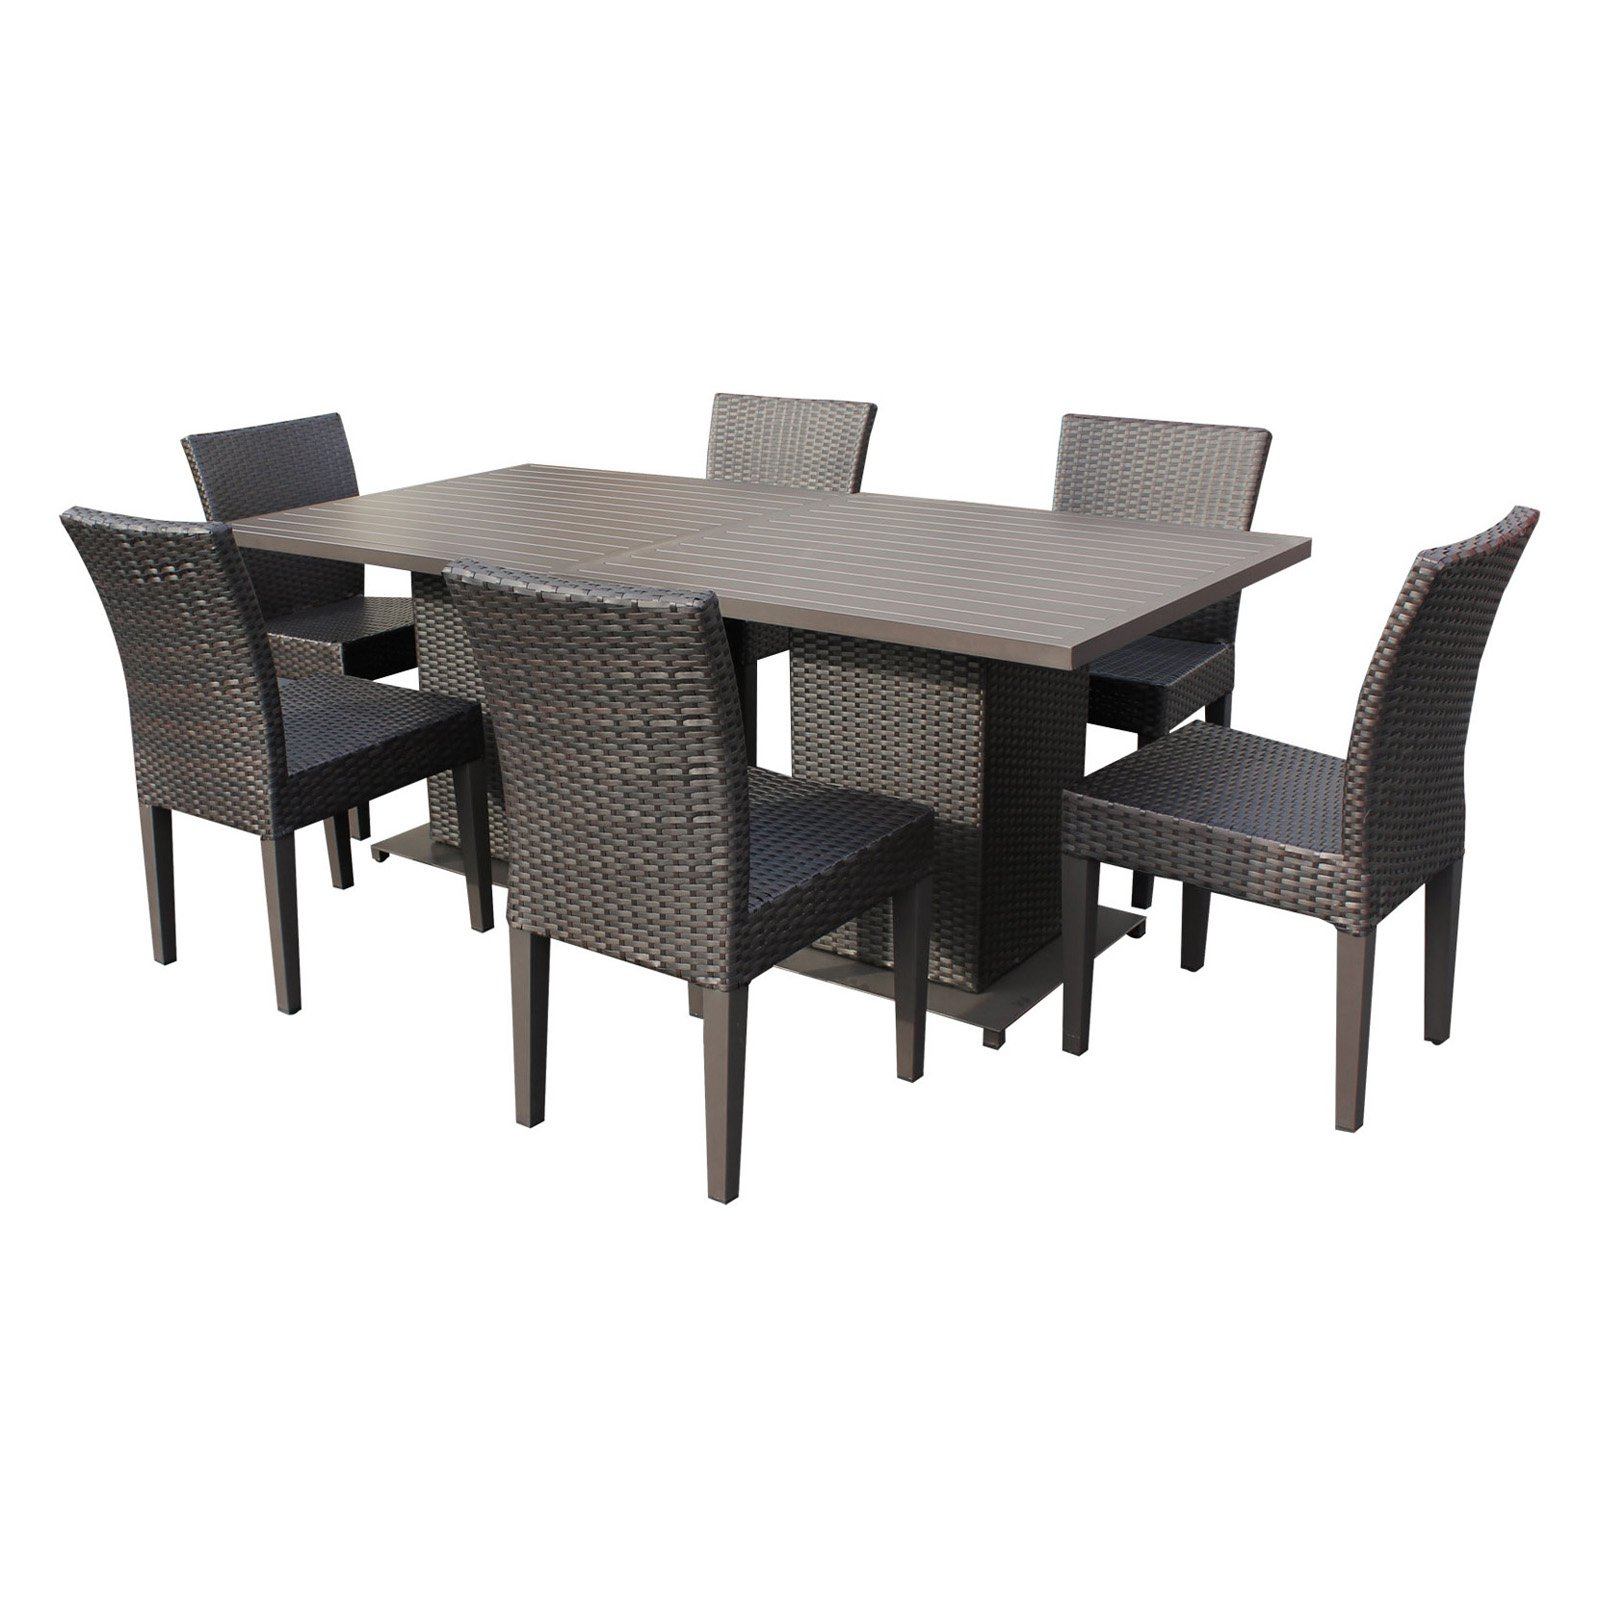 TK Classics Napa Wicker 8 Piece Outdoor Dining Table Set